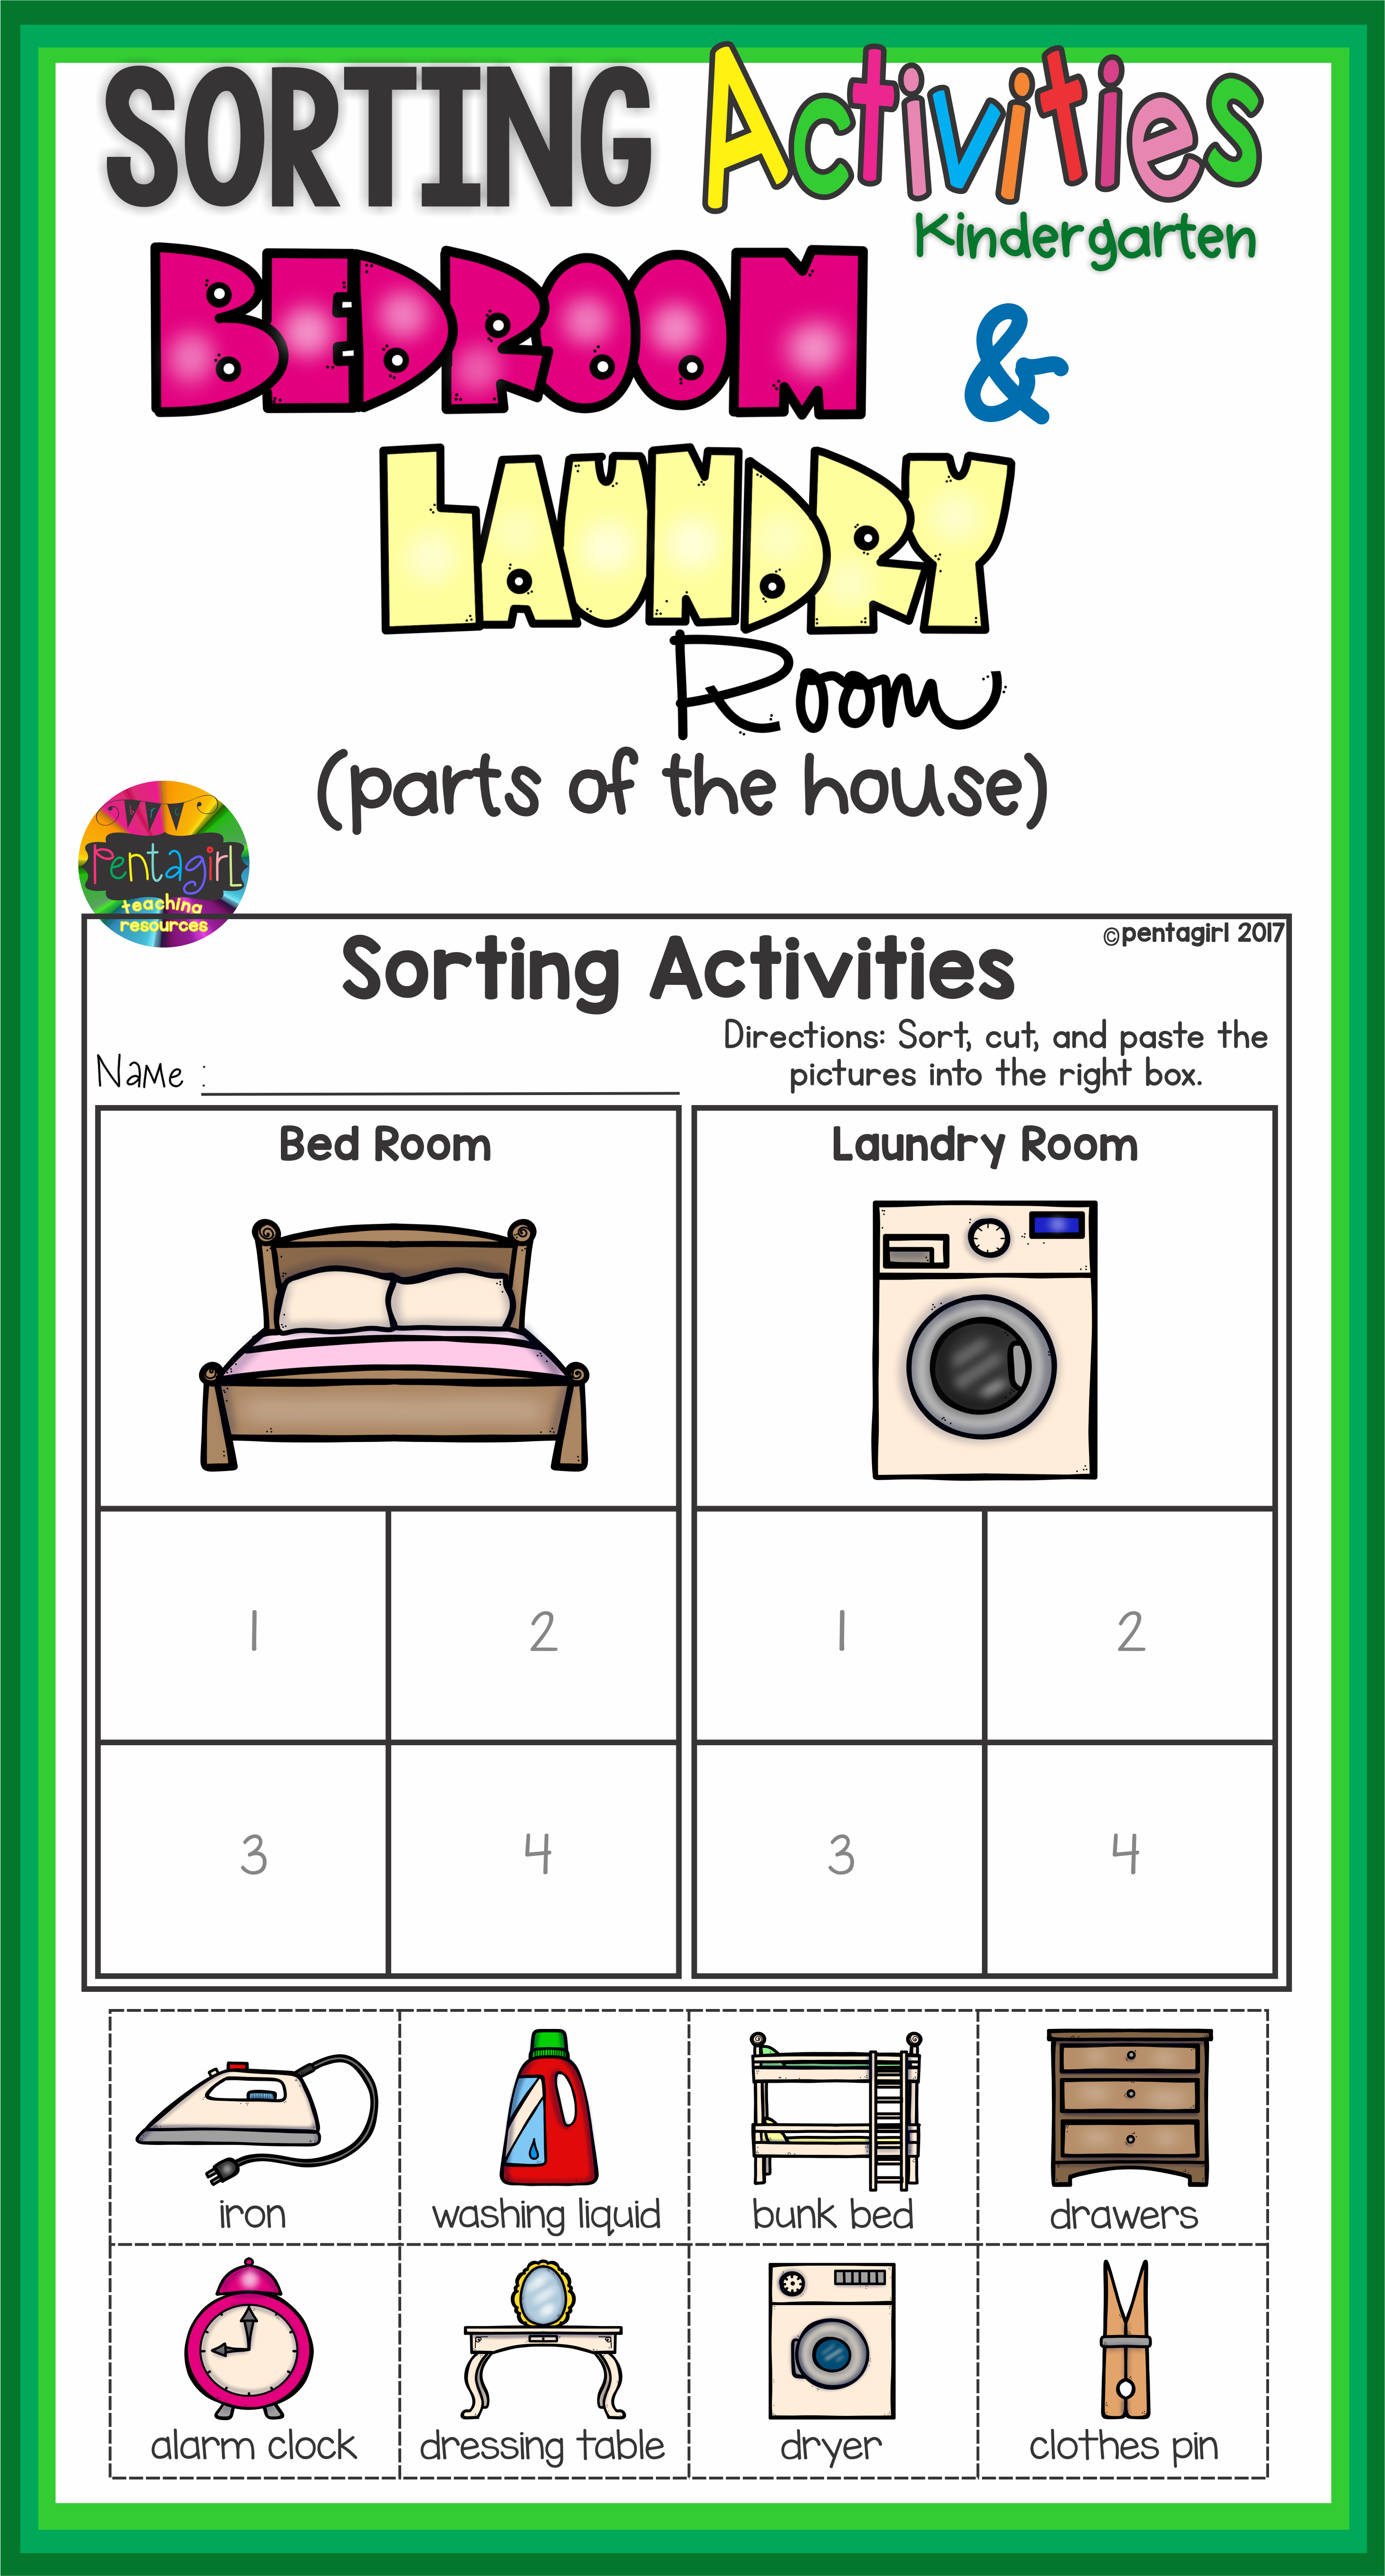 Sorting Activities Posters And Worksheets Bedroom And Laundry Room | Laundry Worksheets Printable